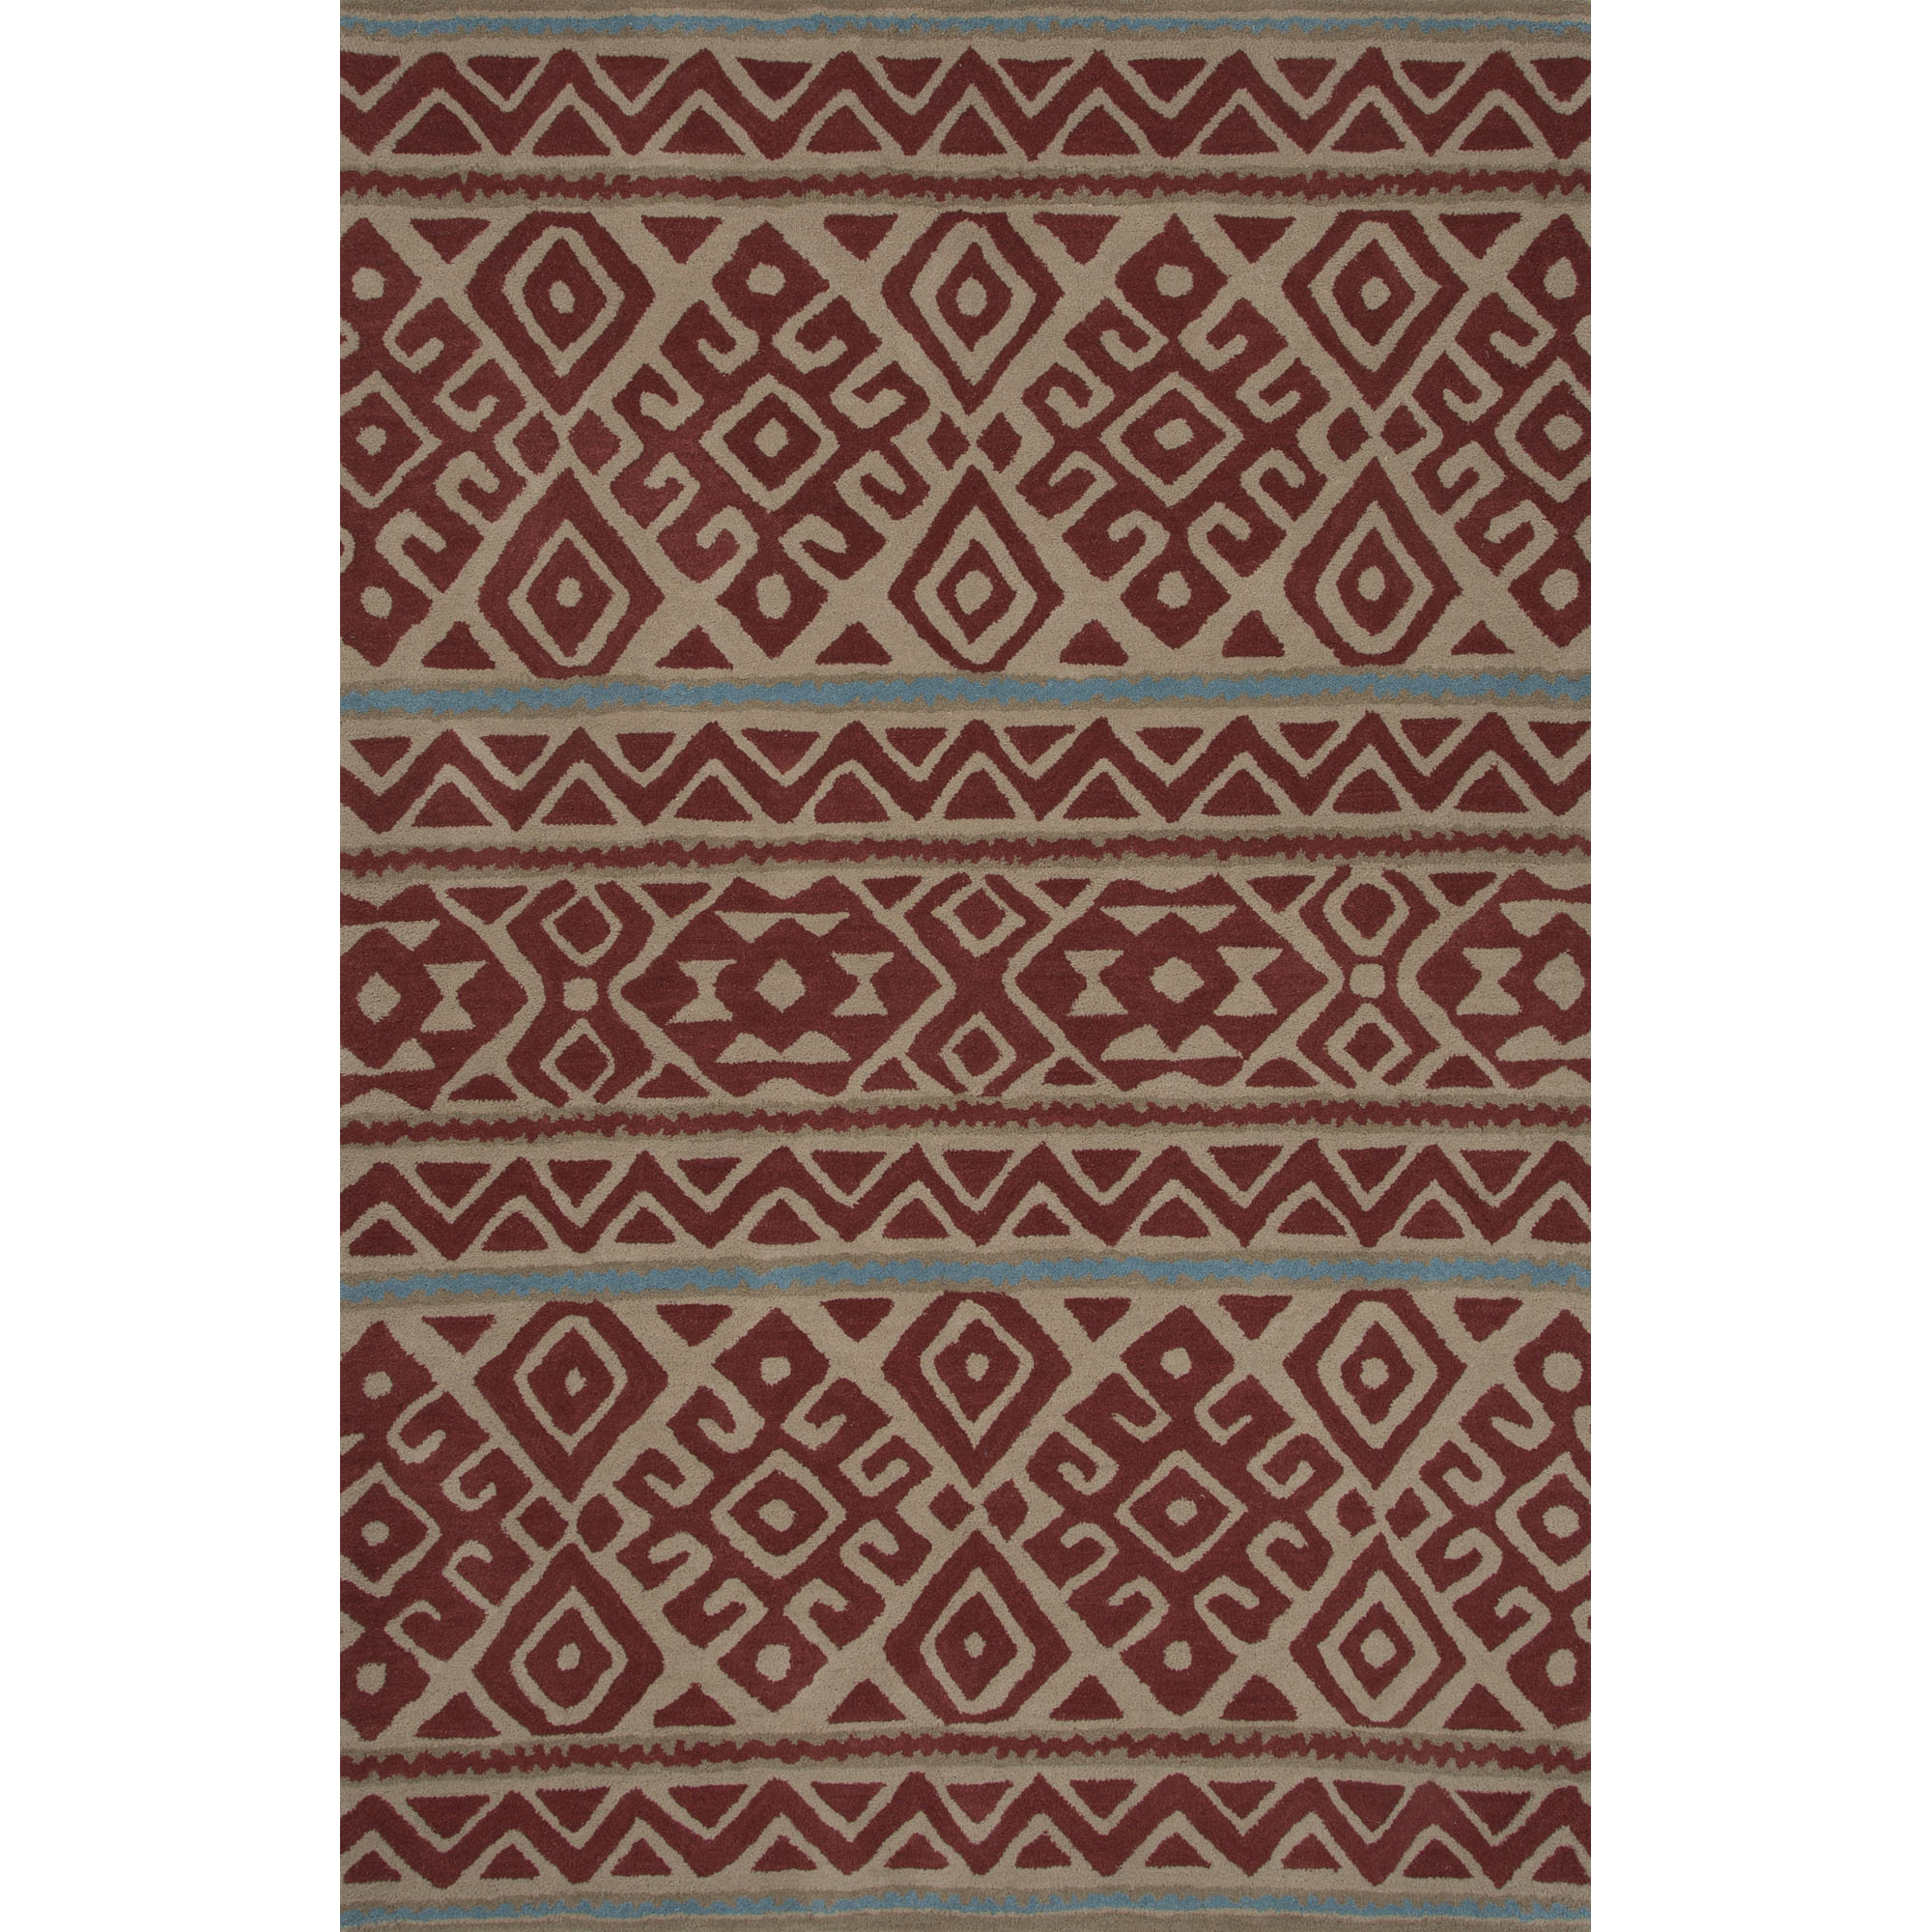 JAIPUR Rugs Traditions Made Modern Tufted 8 x 11 Rug - Item Number: RUG122211